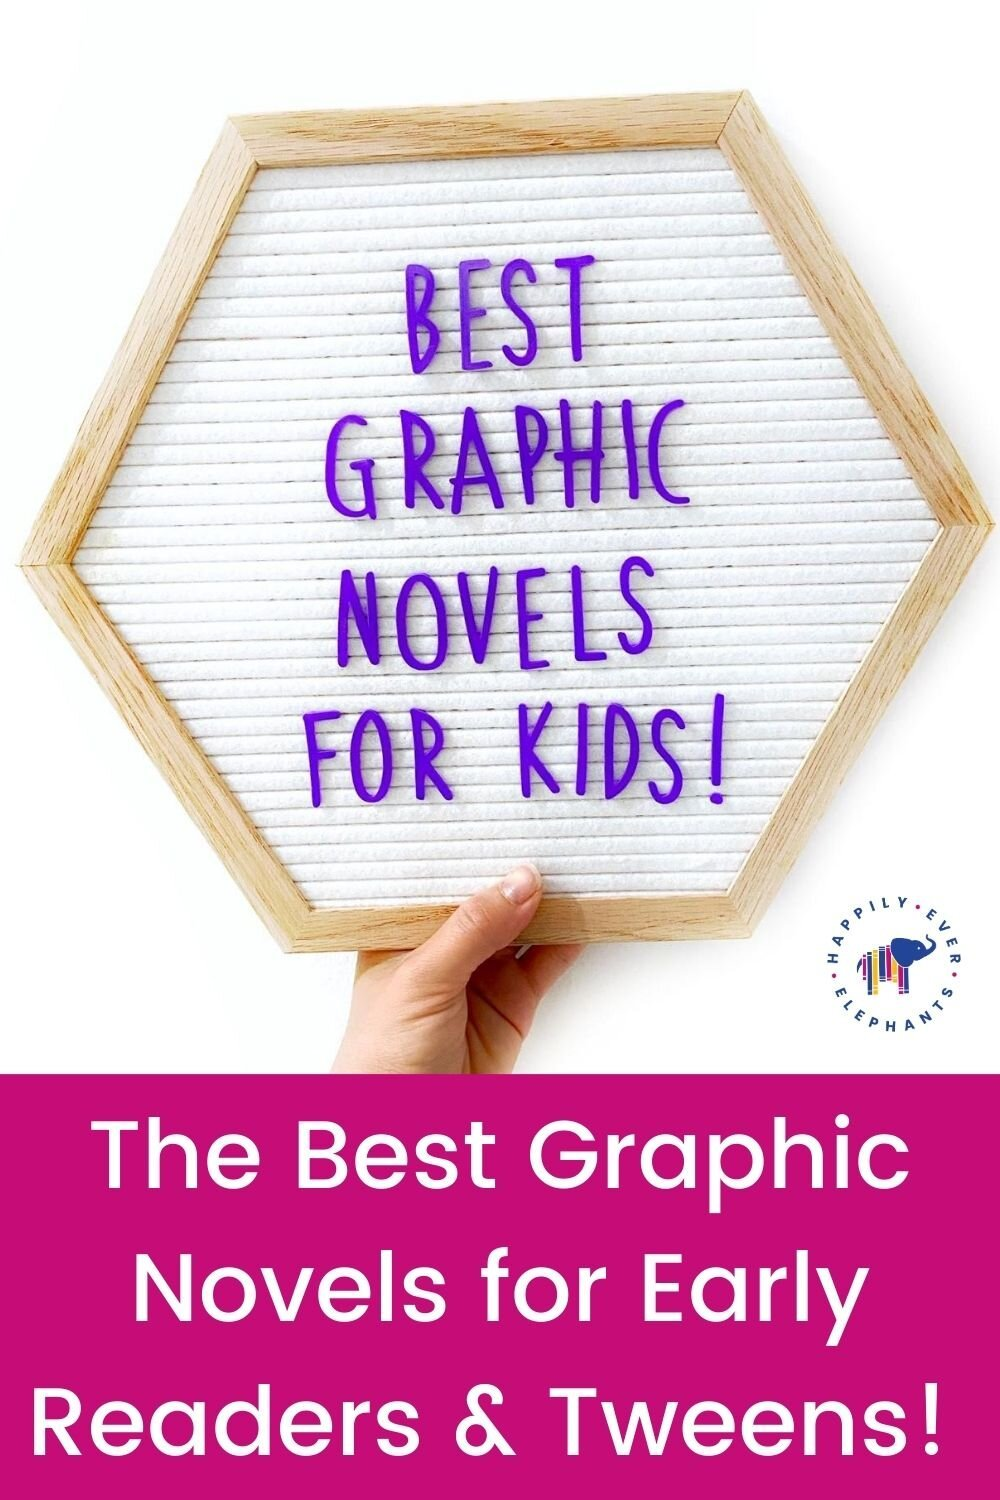 Best Graphic Novels for Tweens